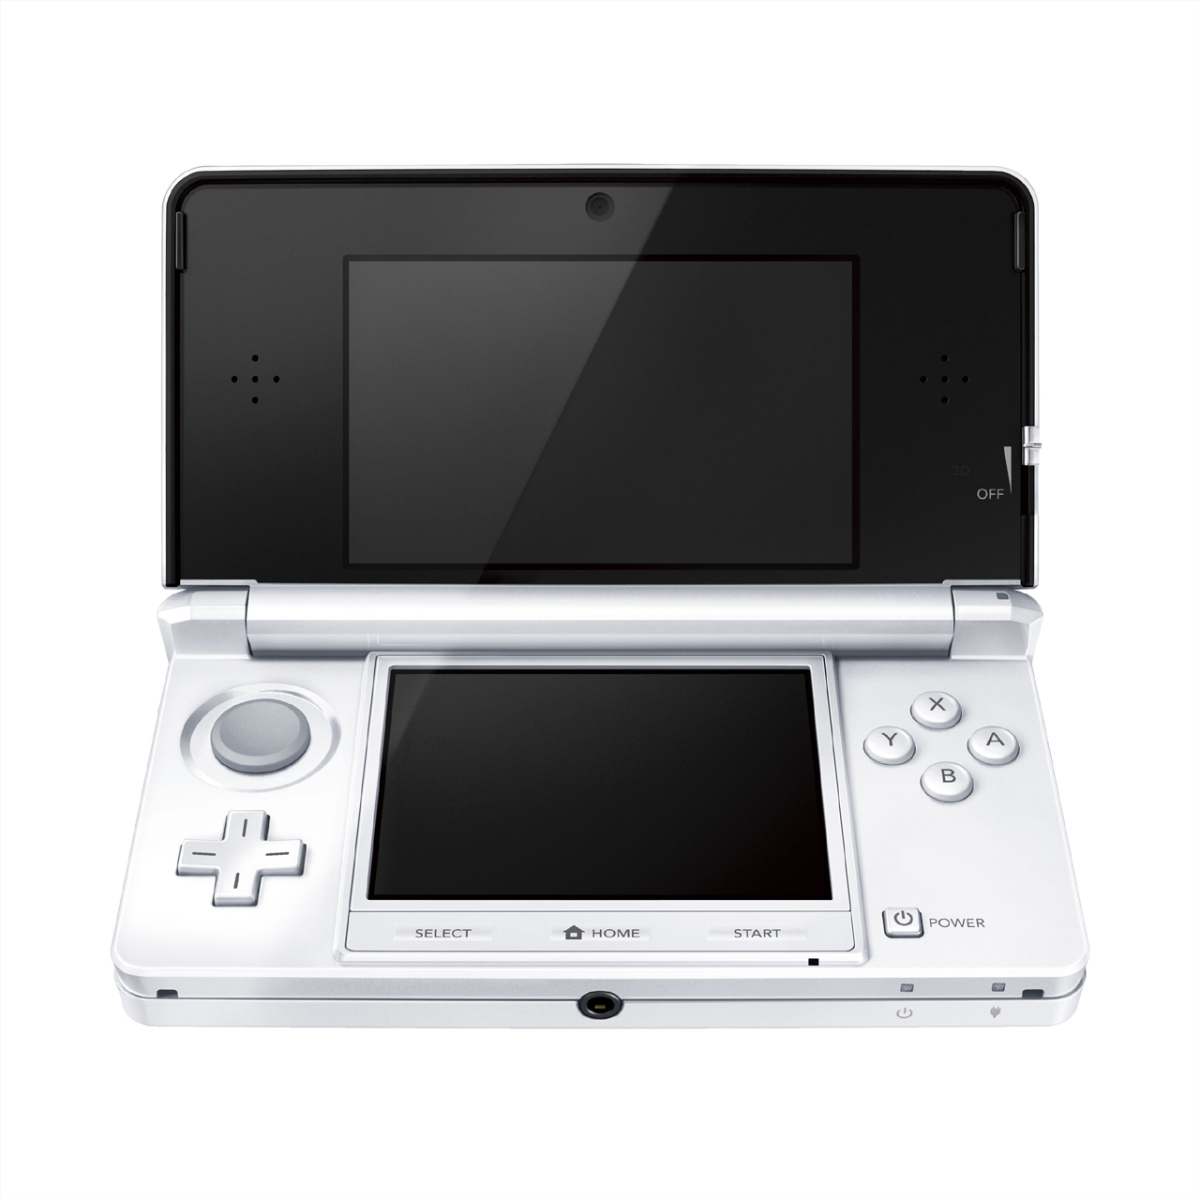 Nintendo 3DS Gets A New Minor SystemUpdate